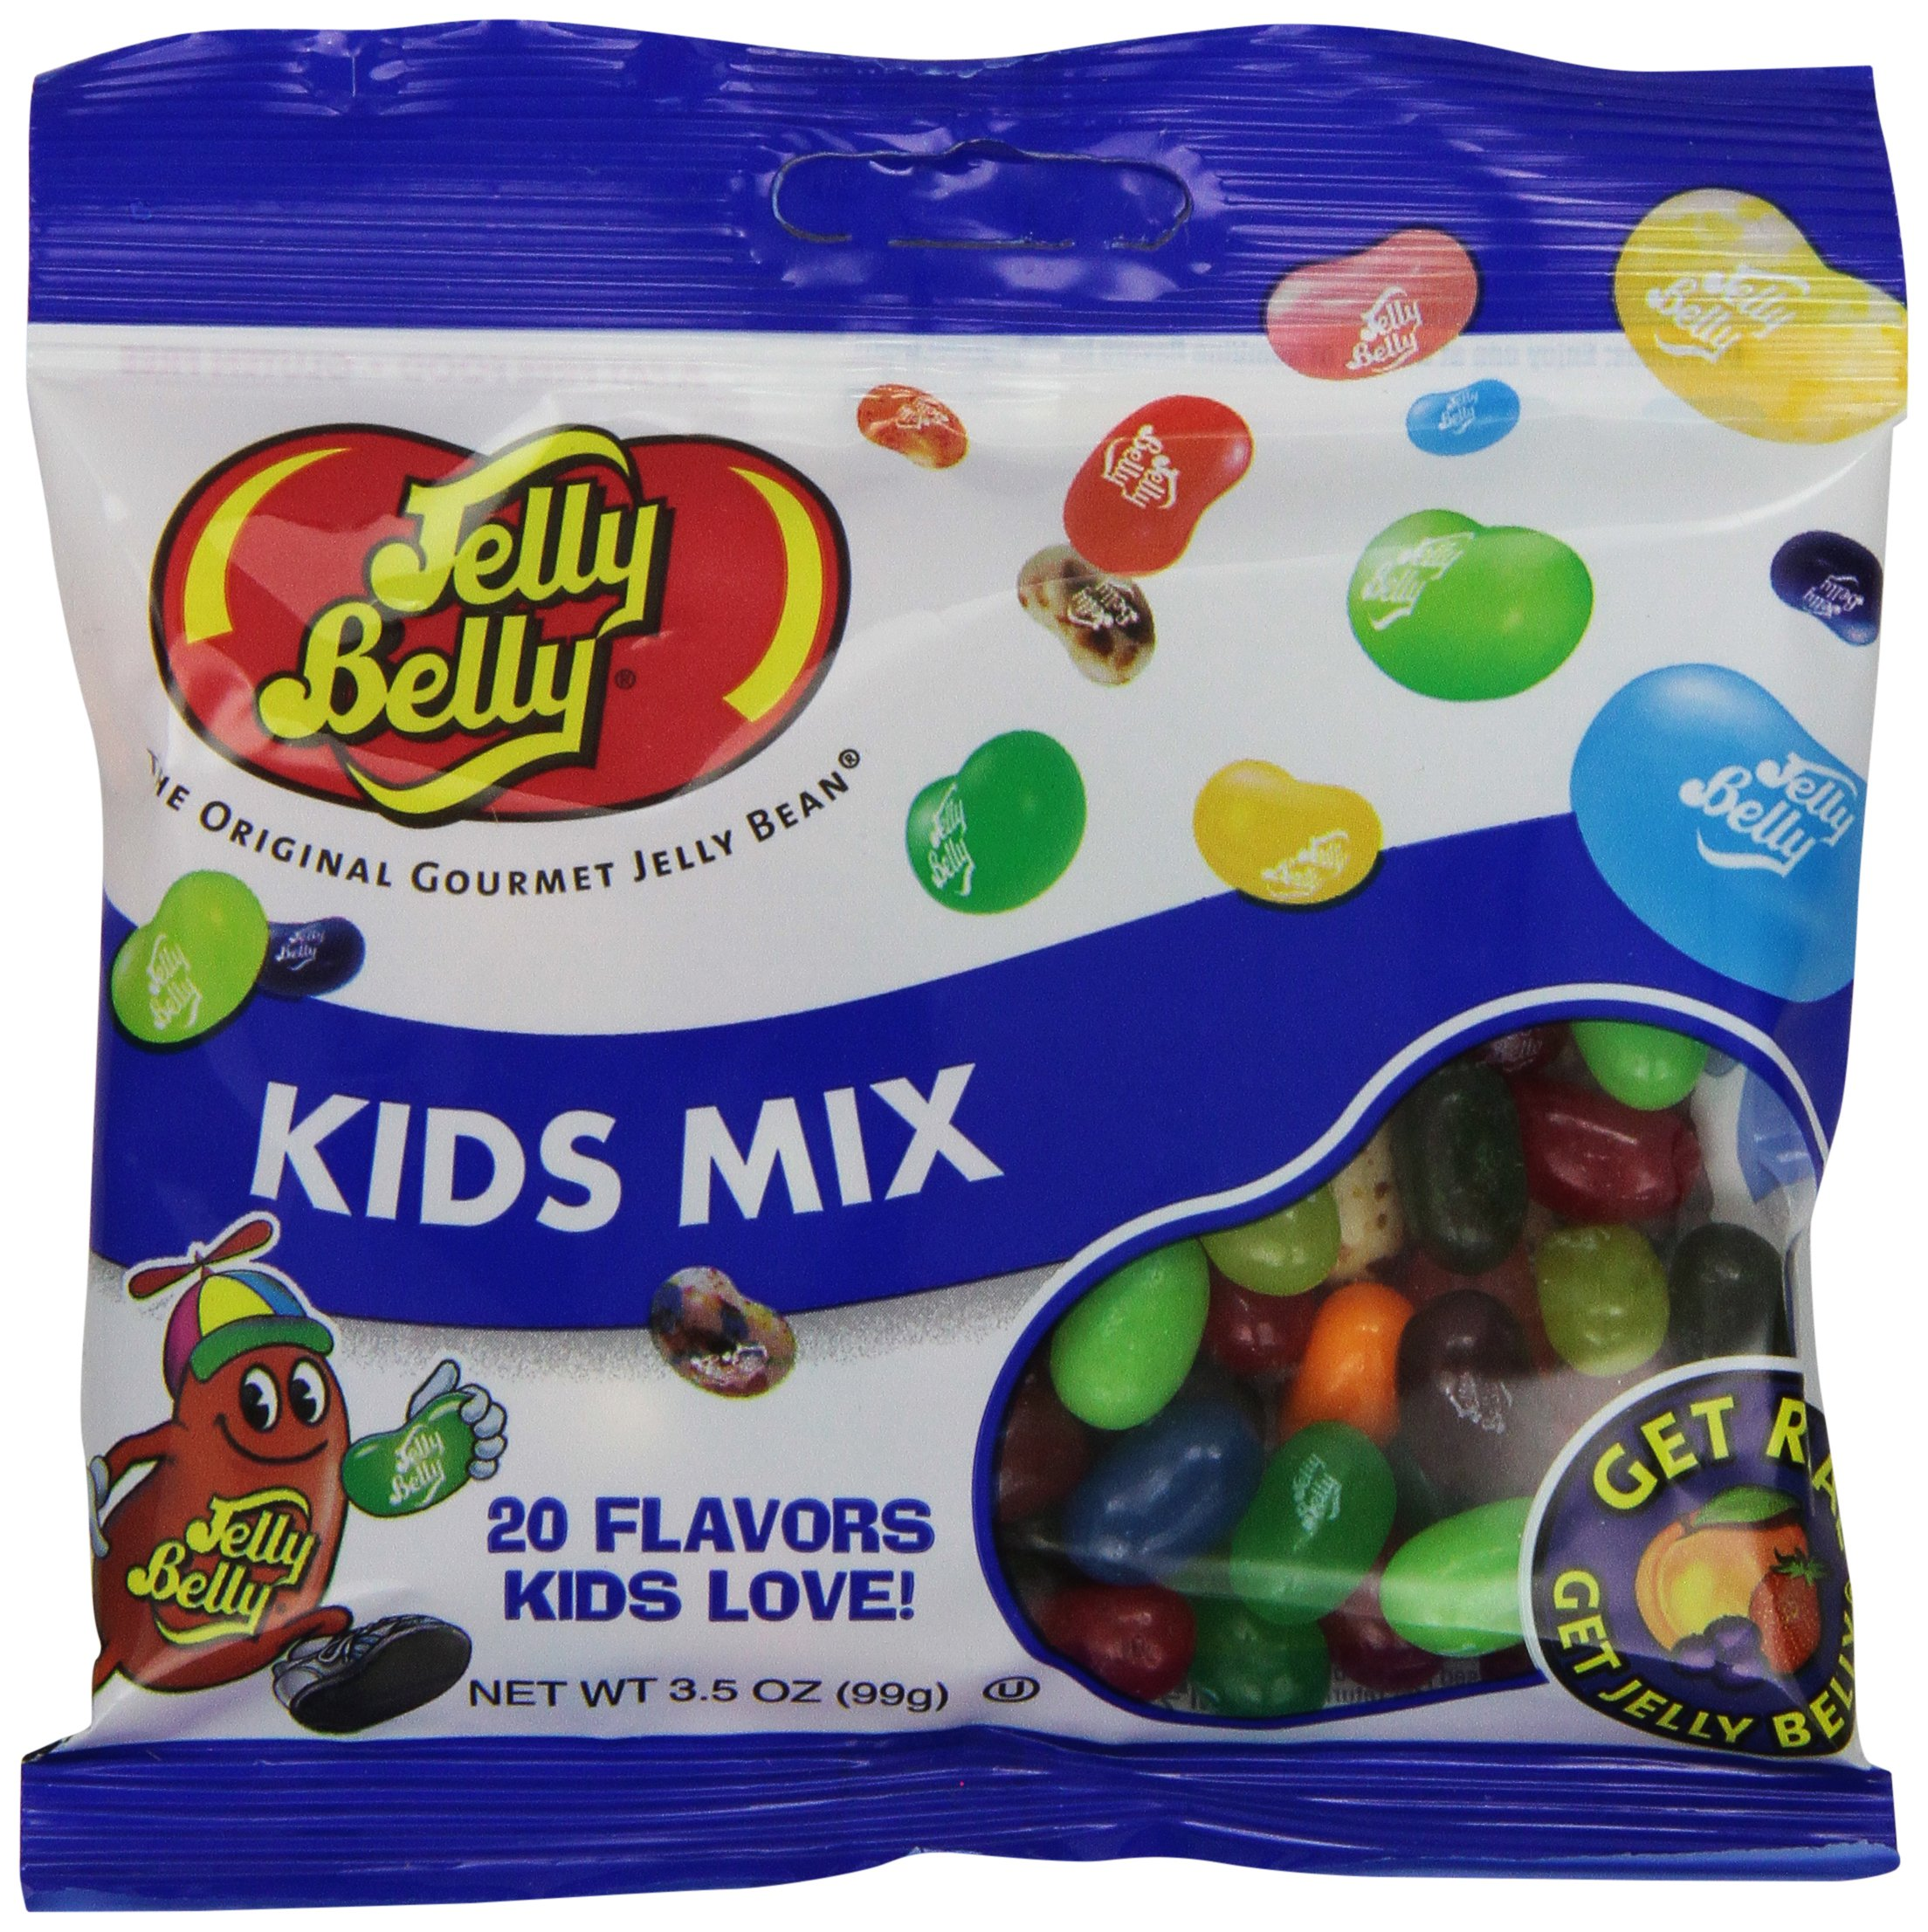 Jelly Belly Kids Mix Jelly Beans, 20 Kid-Friendly Flavors, 3.5-oz, 12 Pack